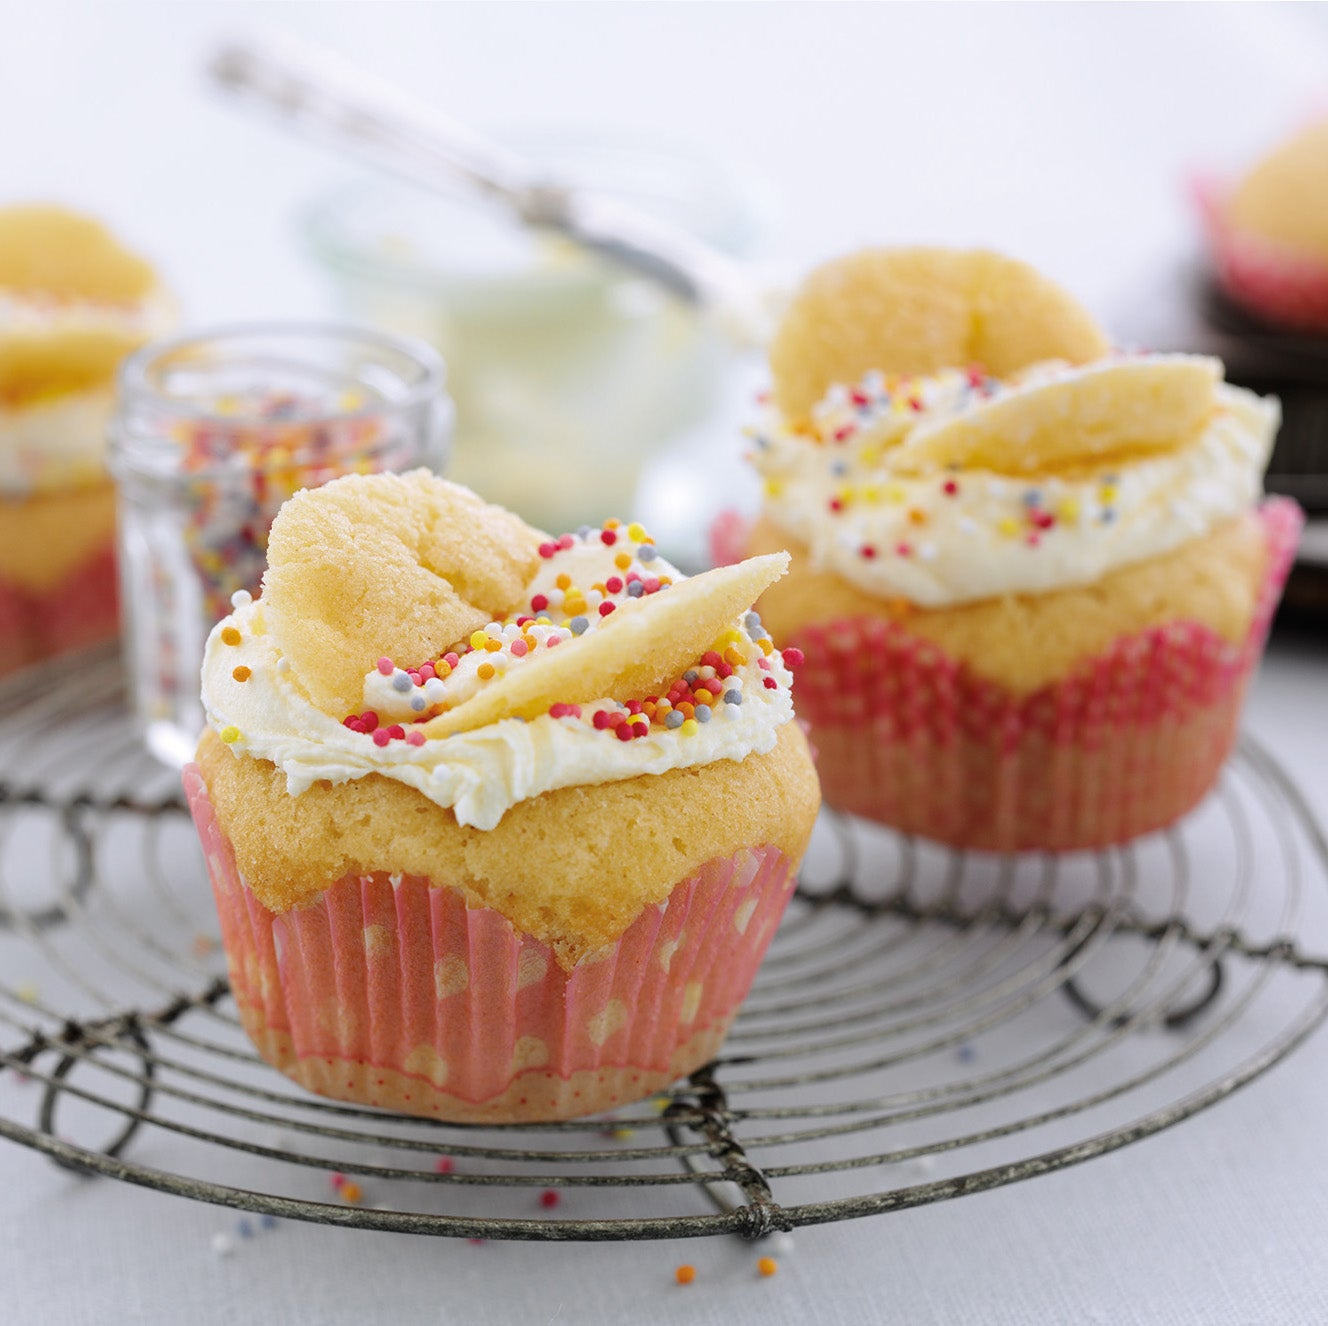 1-St-Clements-Butterfly-cakes-4.jpg